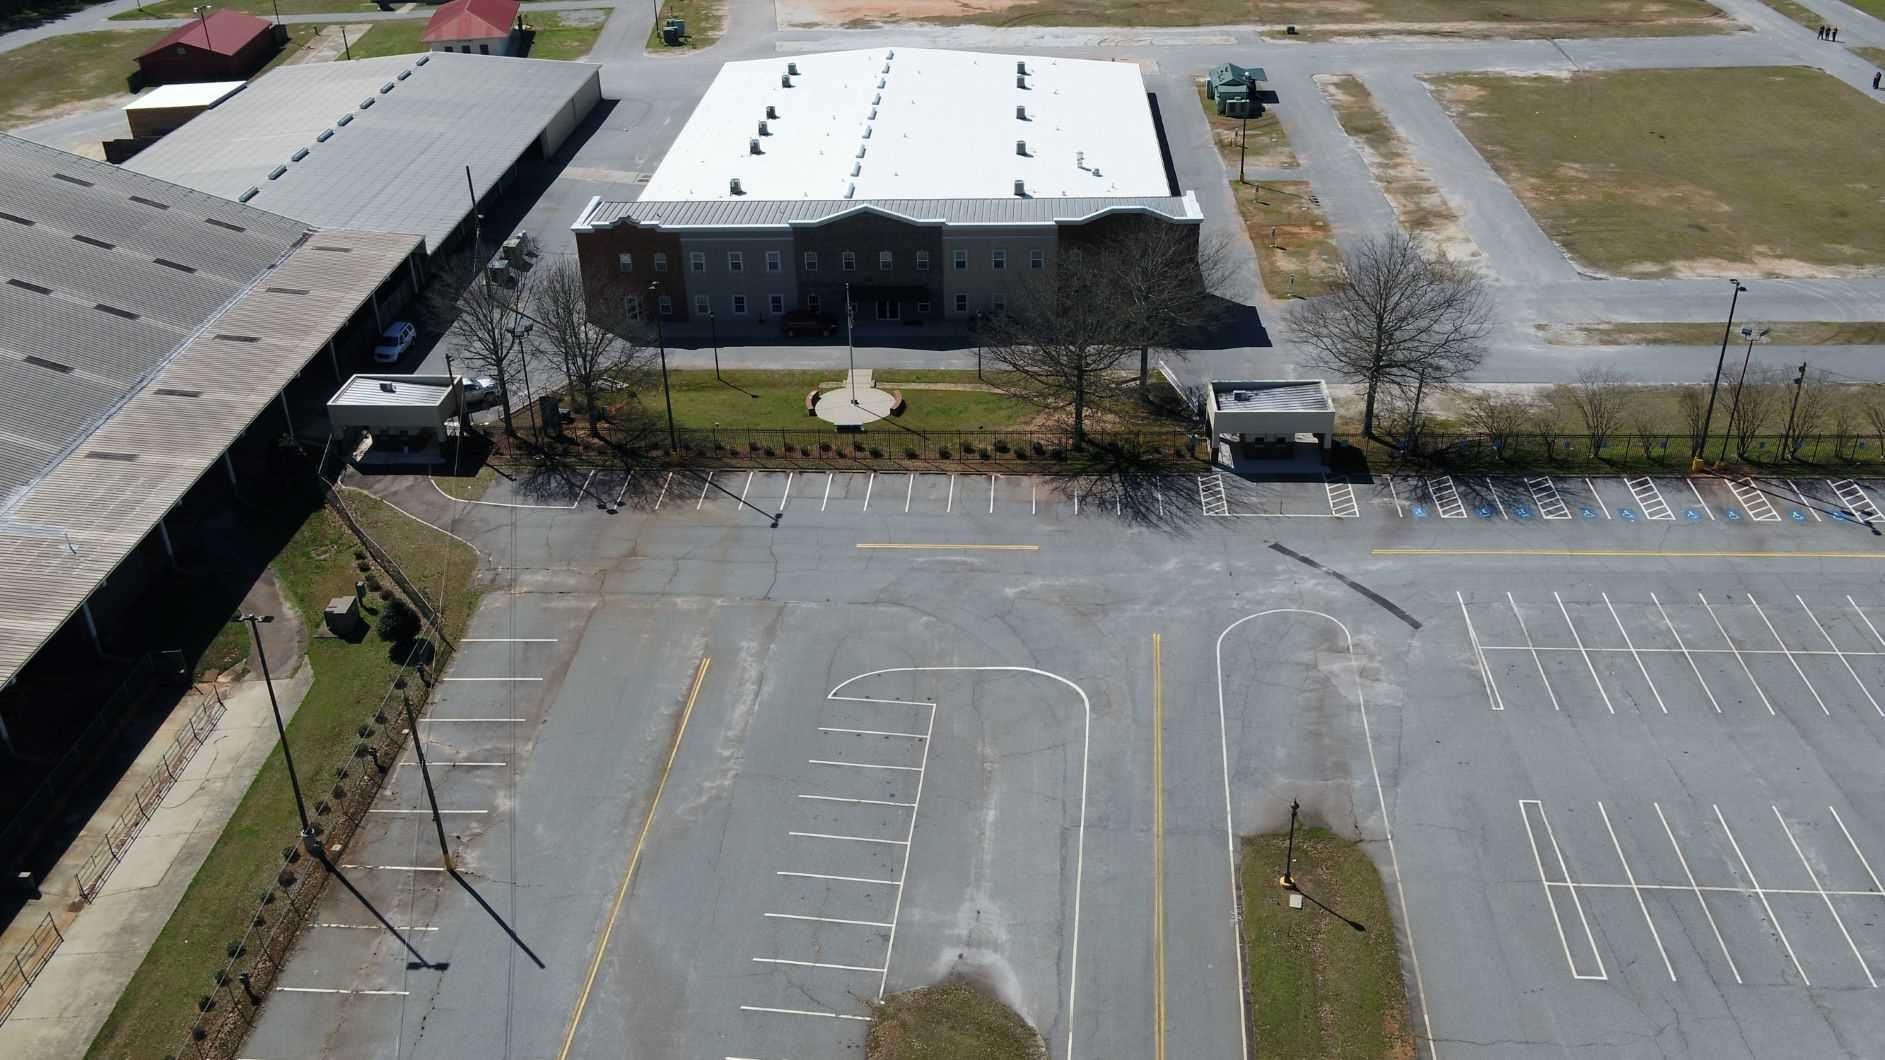 Expo Center building from 500 feet up